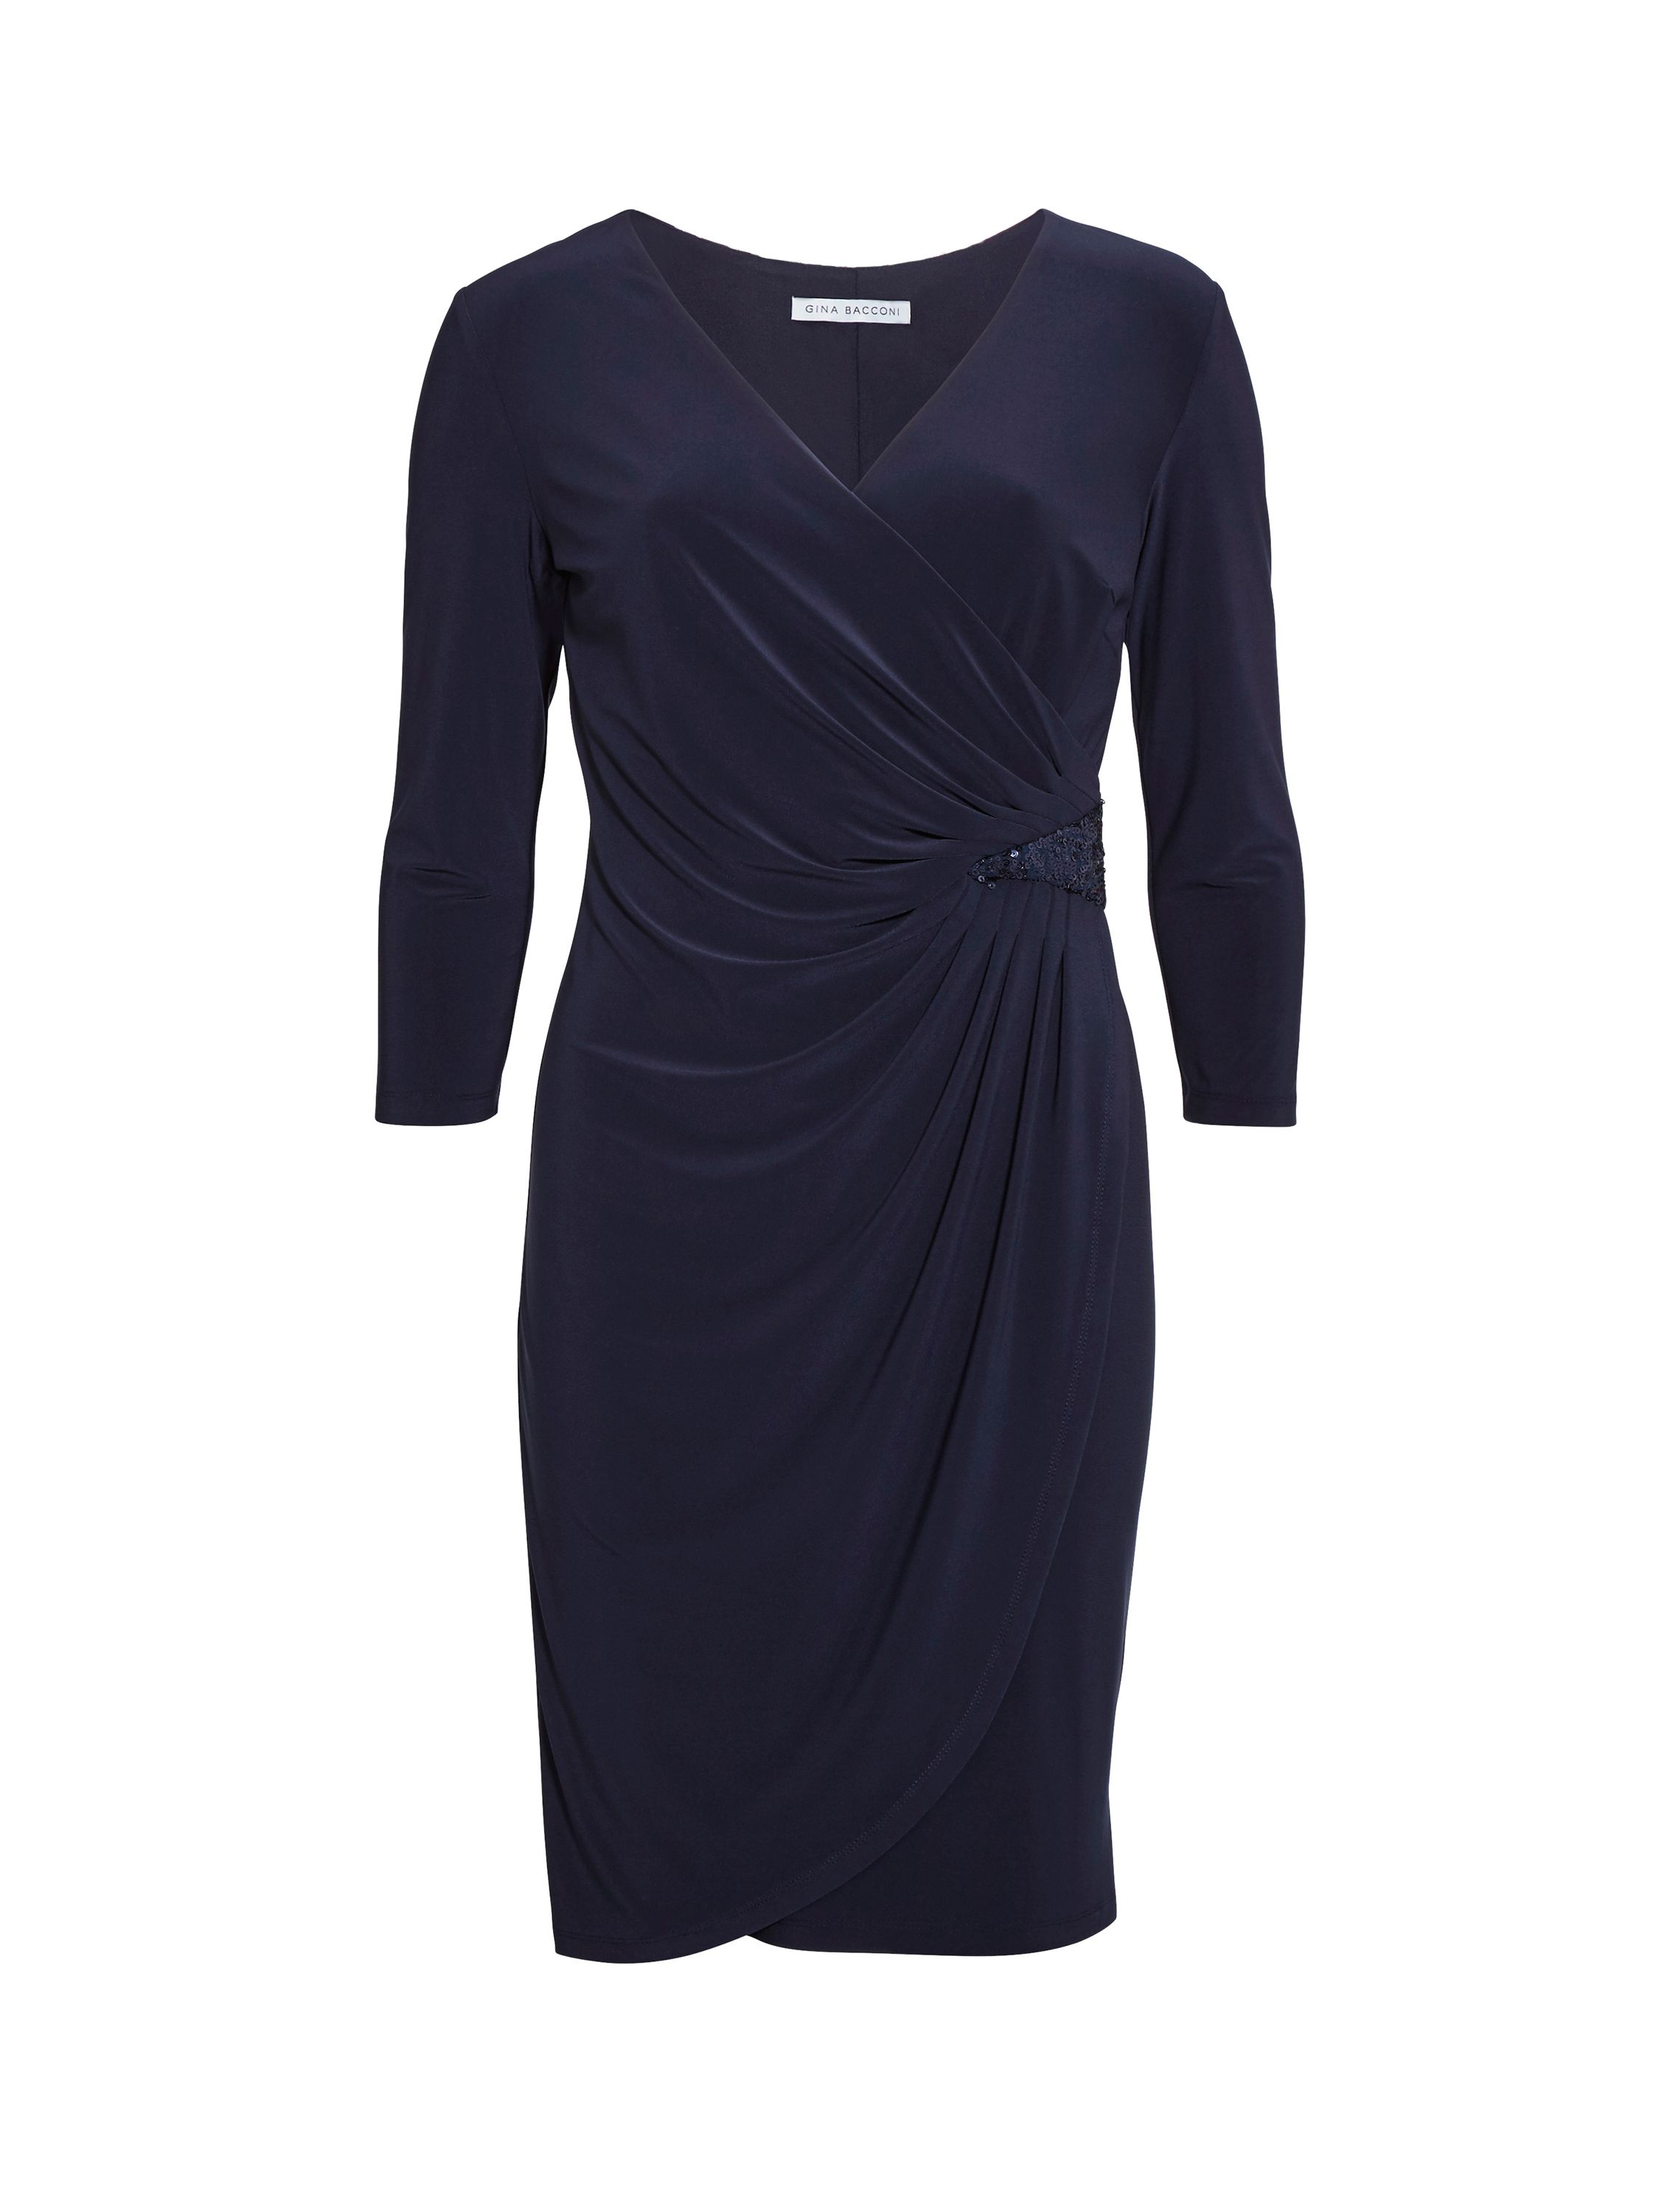 Gina Bacconi Ps Jersey Dress With Sequin Insert, Blue